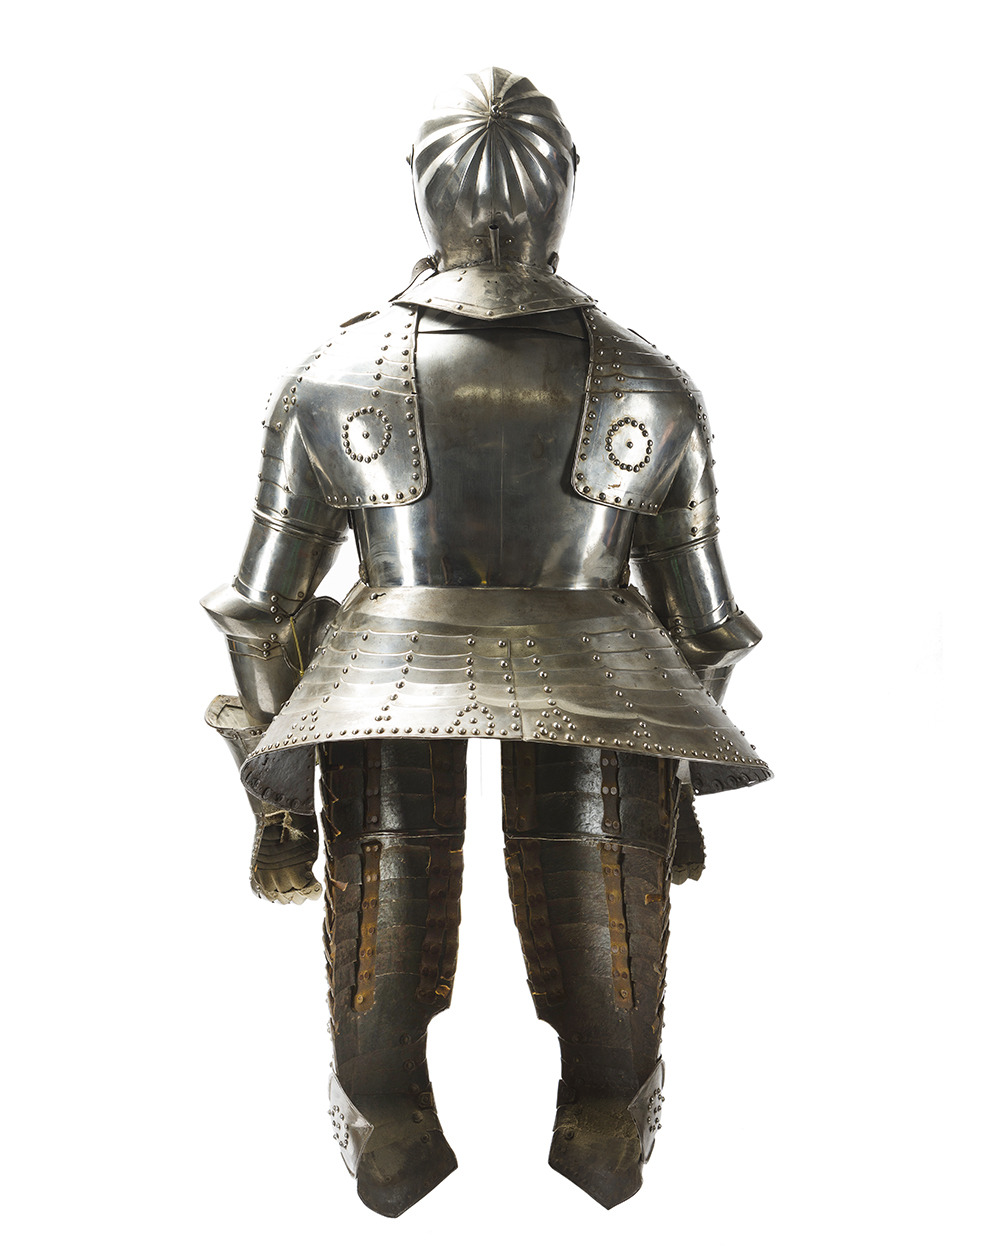 Lot 33 - A Continental cuirassier suit of armor